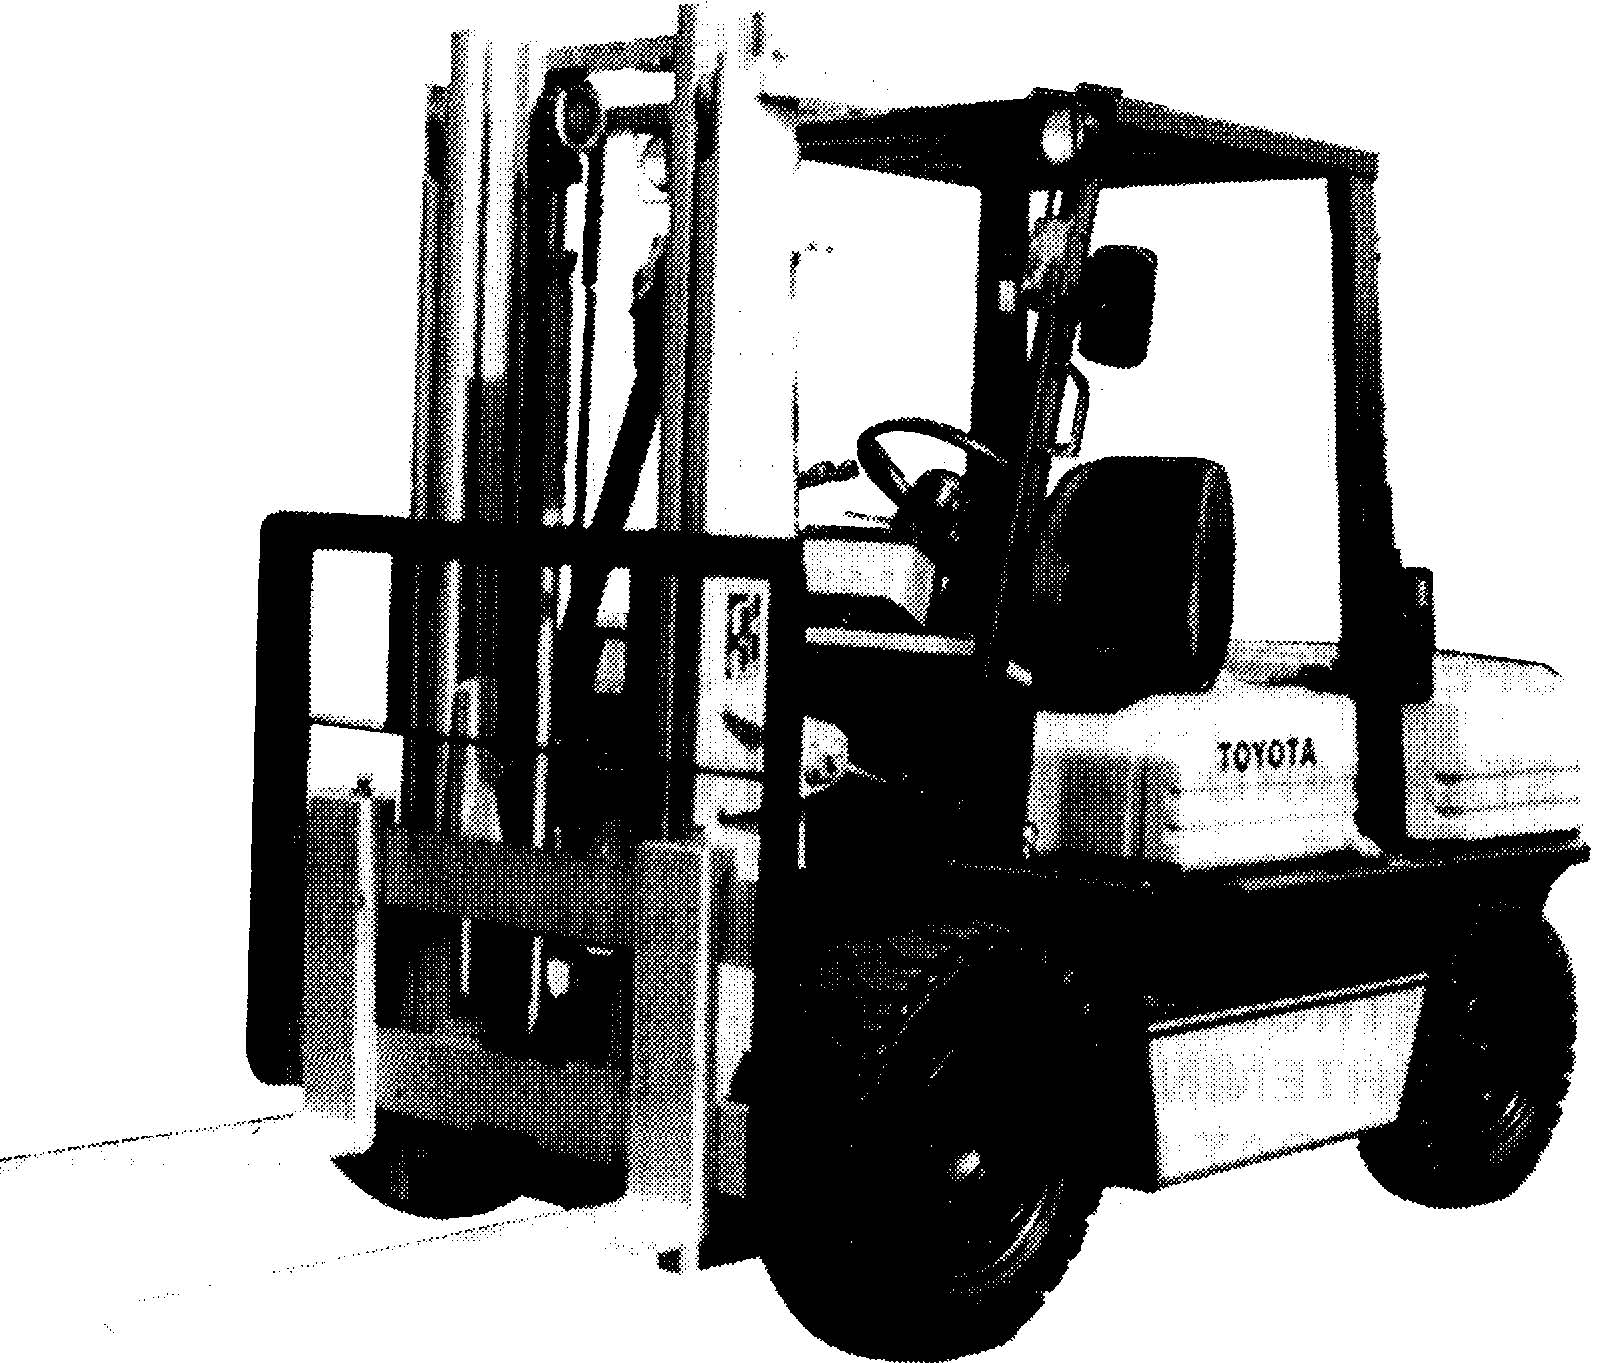 Toyota Forklift 5fg5fd3345 Series Service Repair Man. Toyota Forklift 5fg5fd3345 Series Service Repair Manual Download. Toyota. Toyota Forklift 02 5fg45 Wiring Diagram At Scoala.co